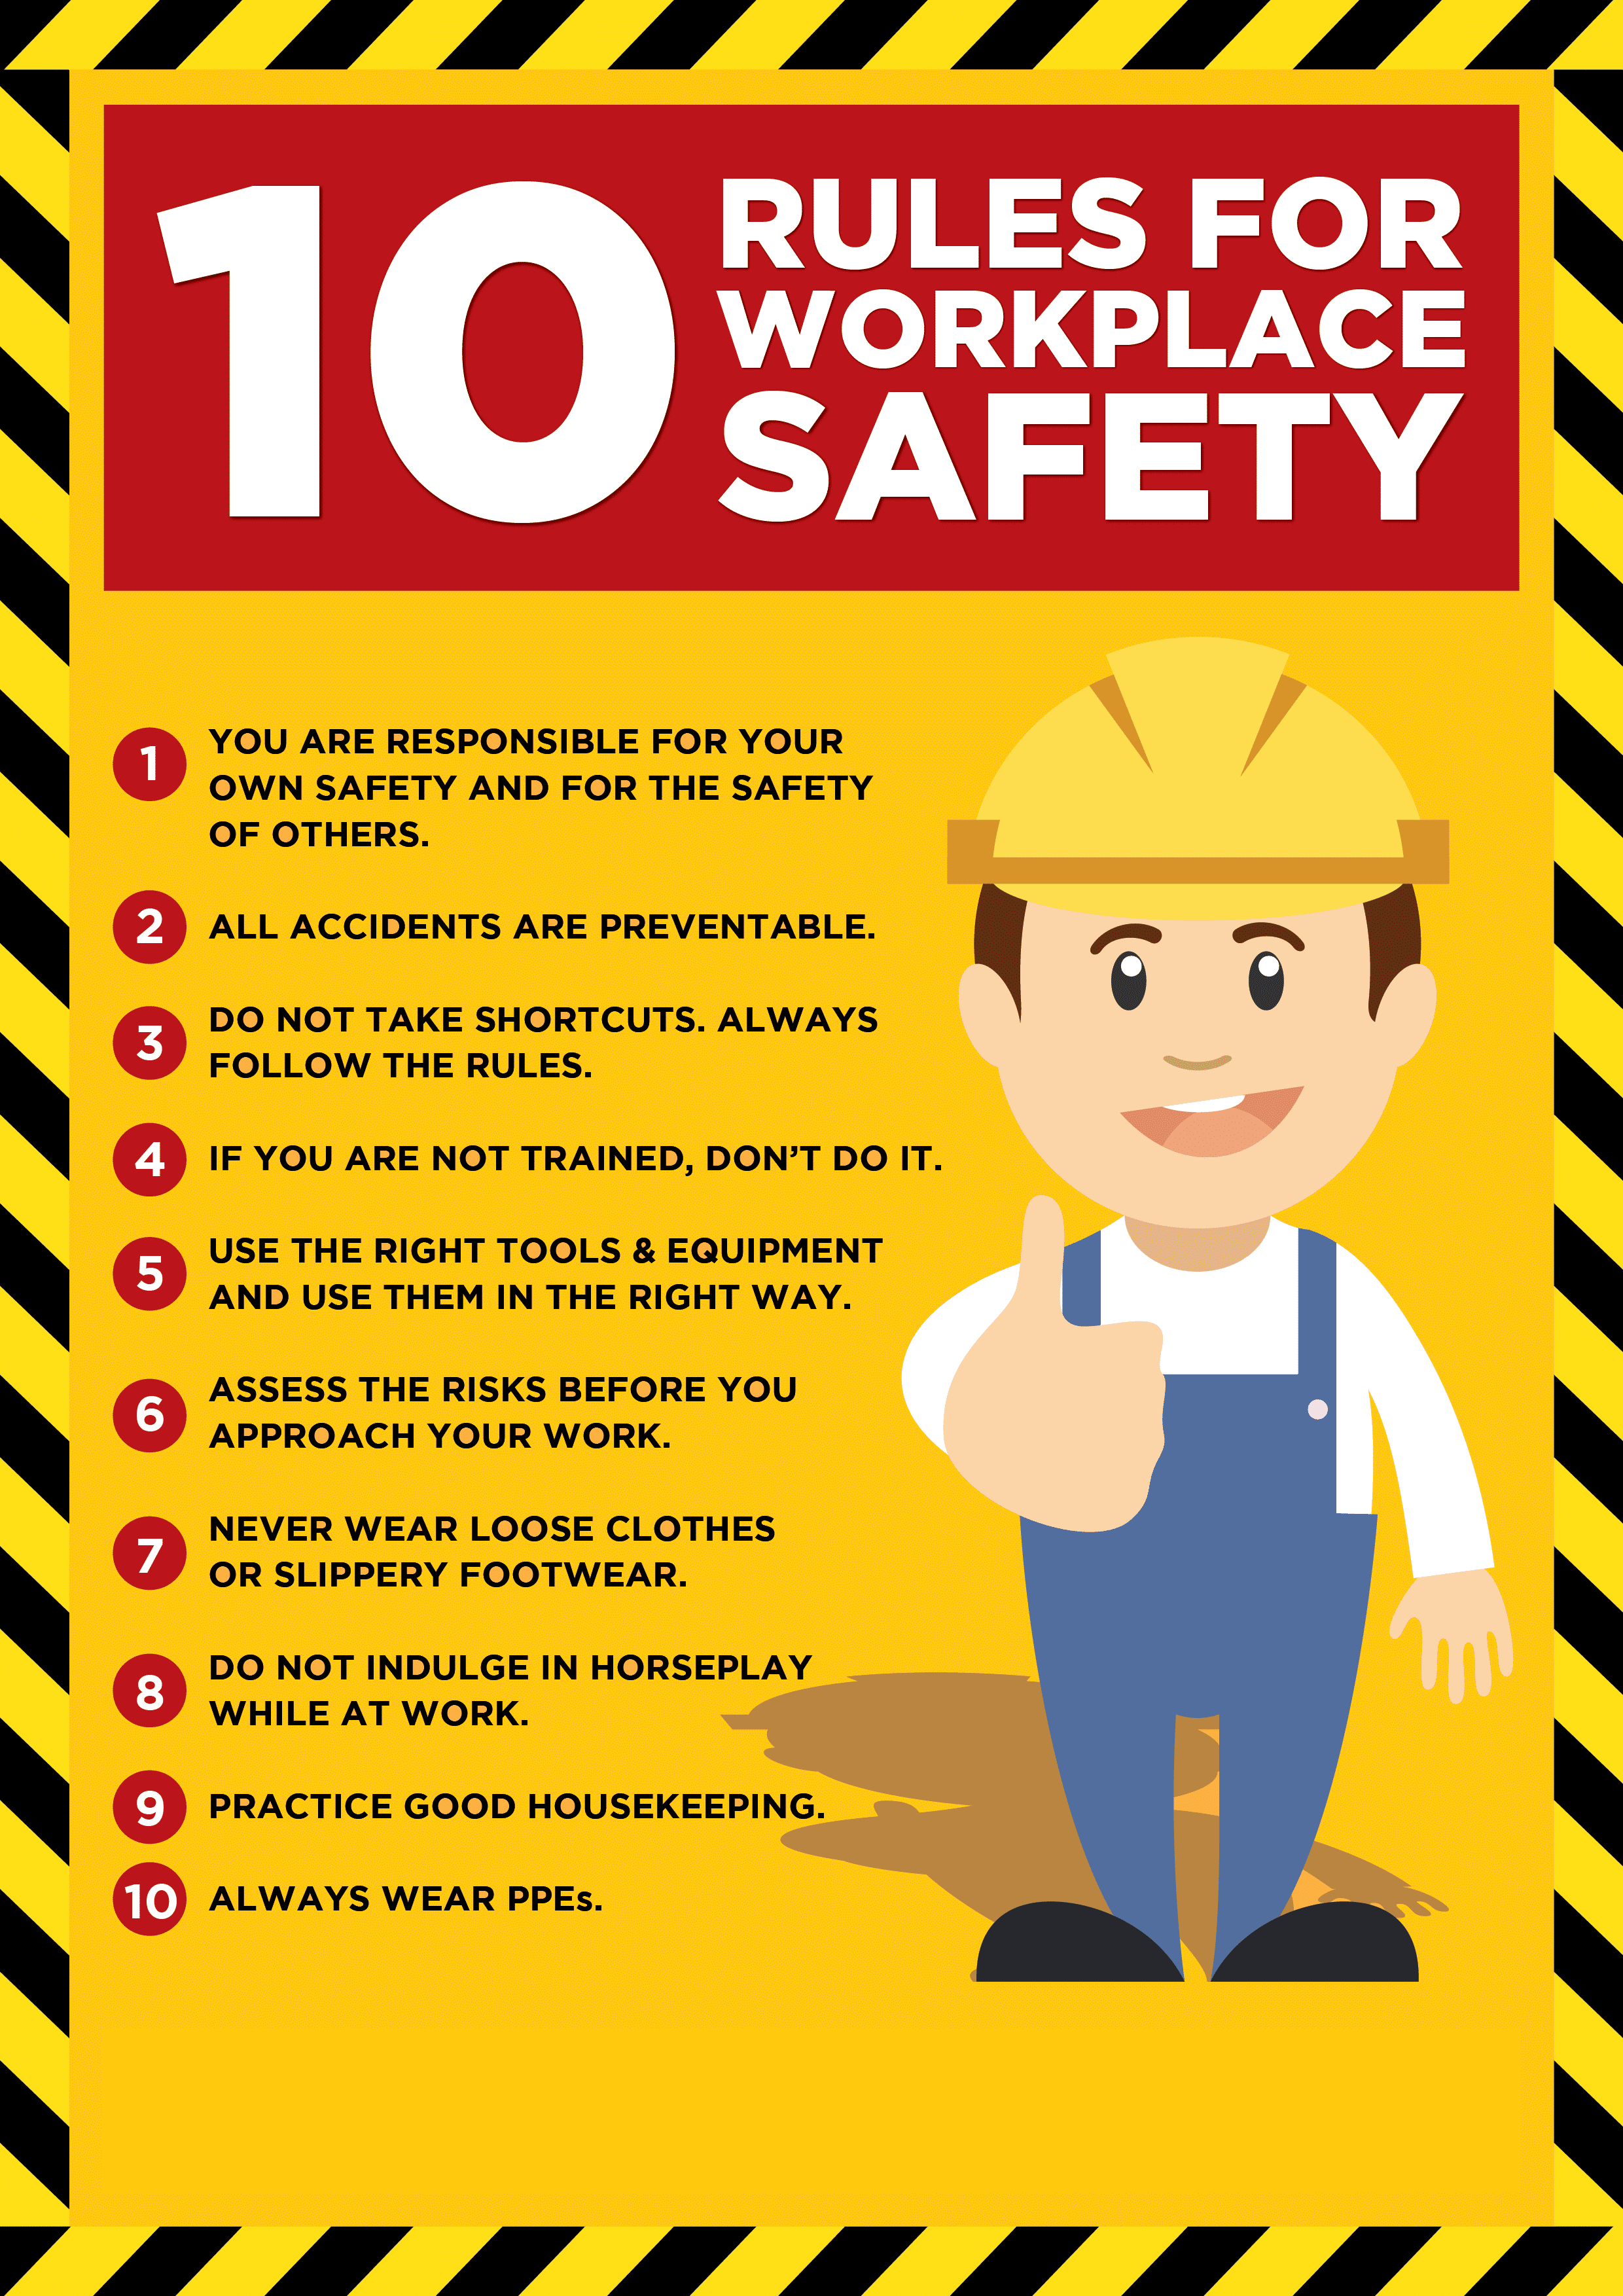 10 Rules for Workplace Safety | McKay Law